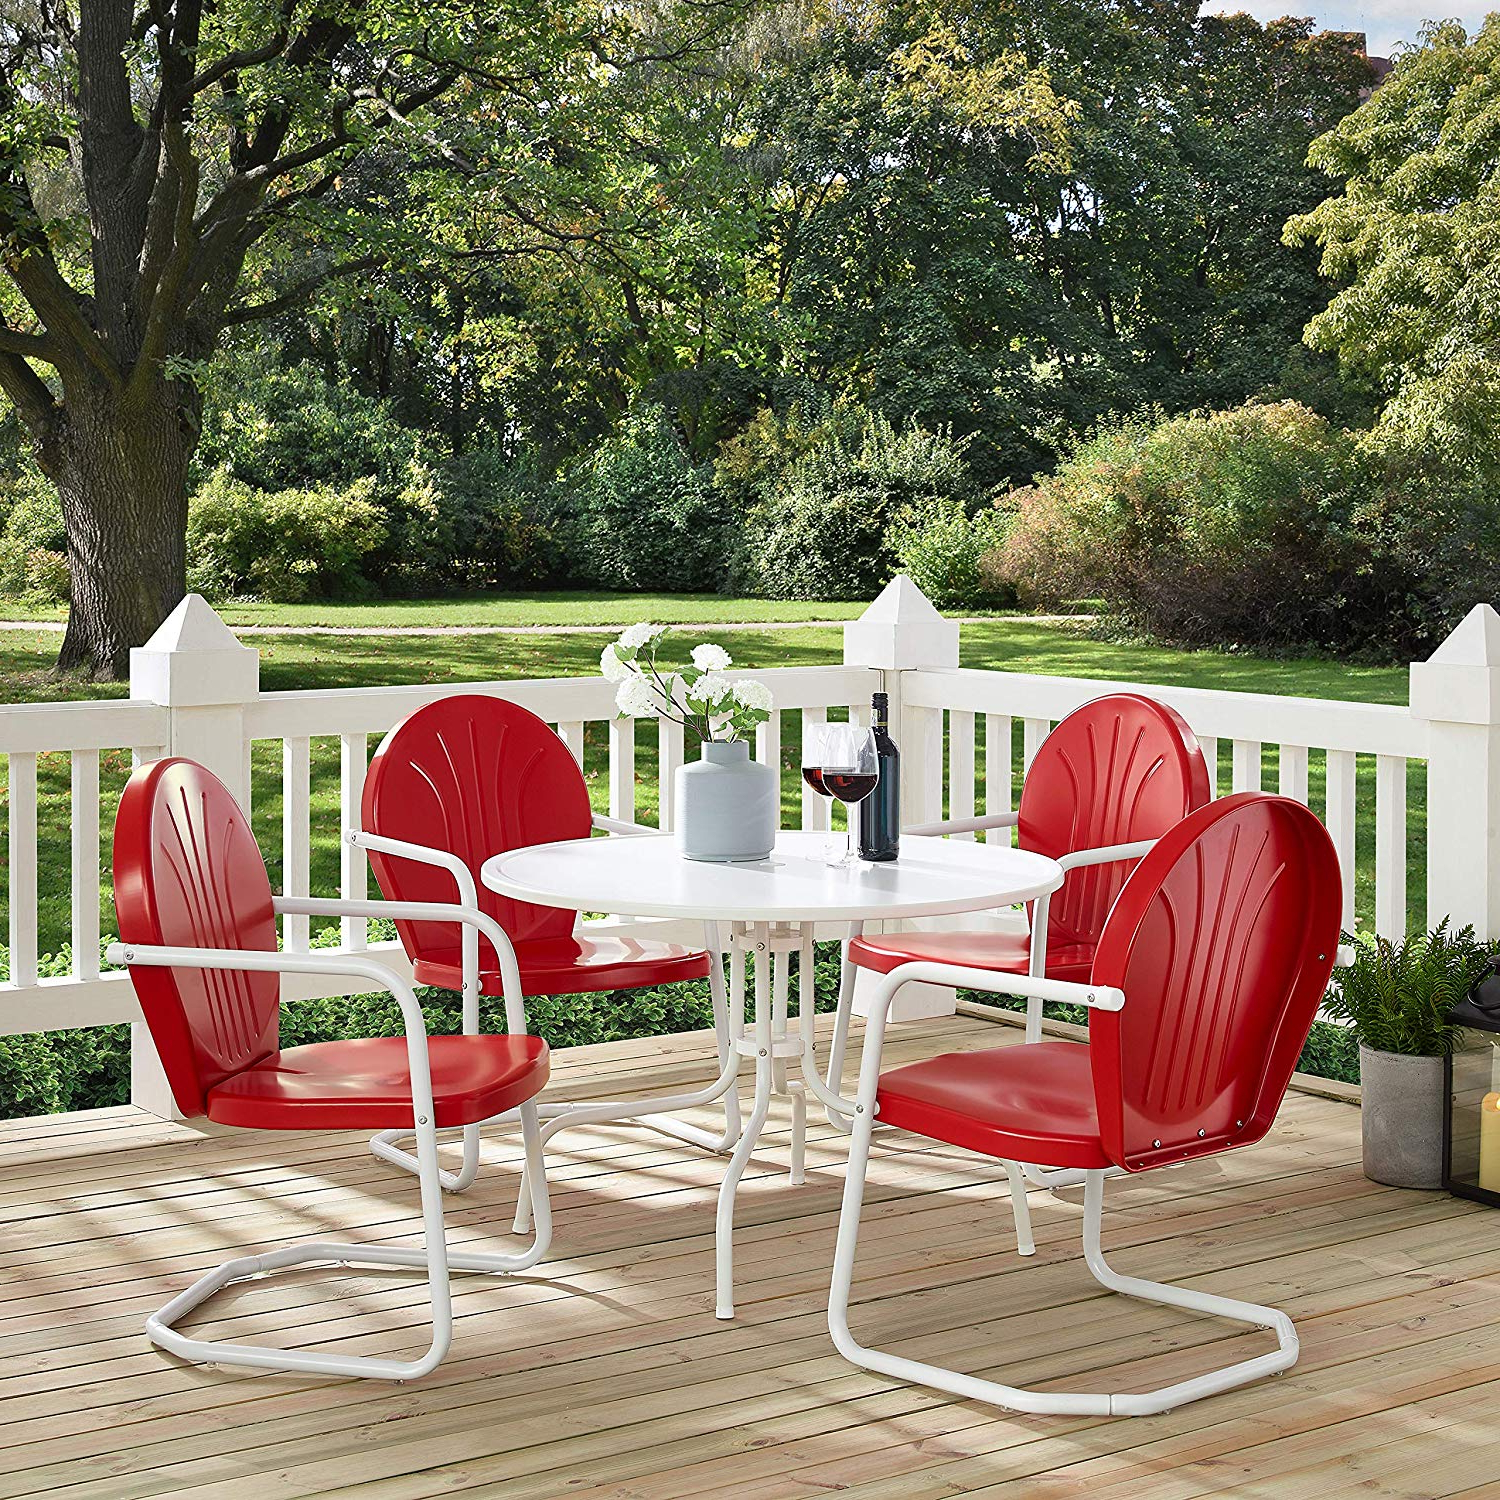 Crosley Furniture Griffith 5 Piece Metal Outdoor Dining Set With Table And  Chairs – Coral Red Regarding Widely Used Bate Red Retro 3 Piece Dining Sets (View 9 of 20)